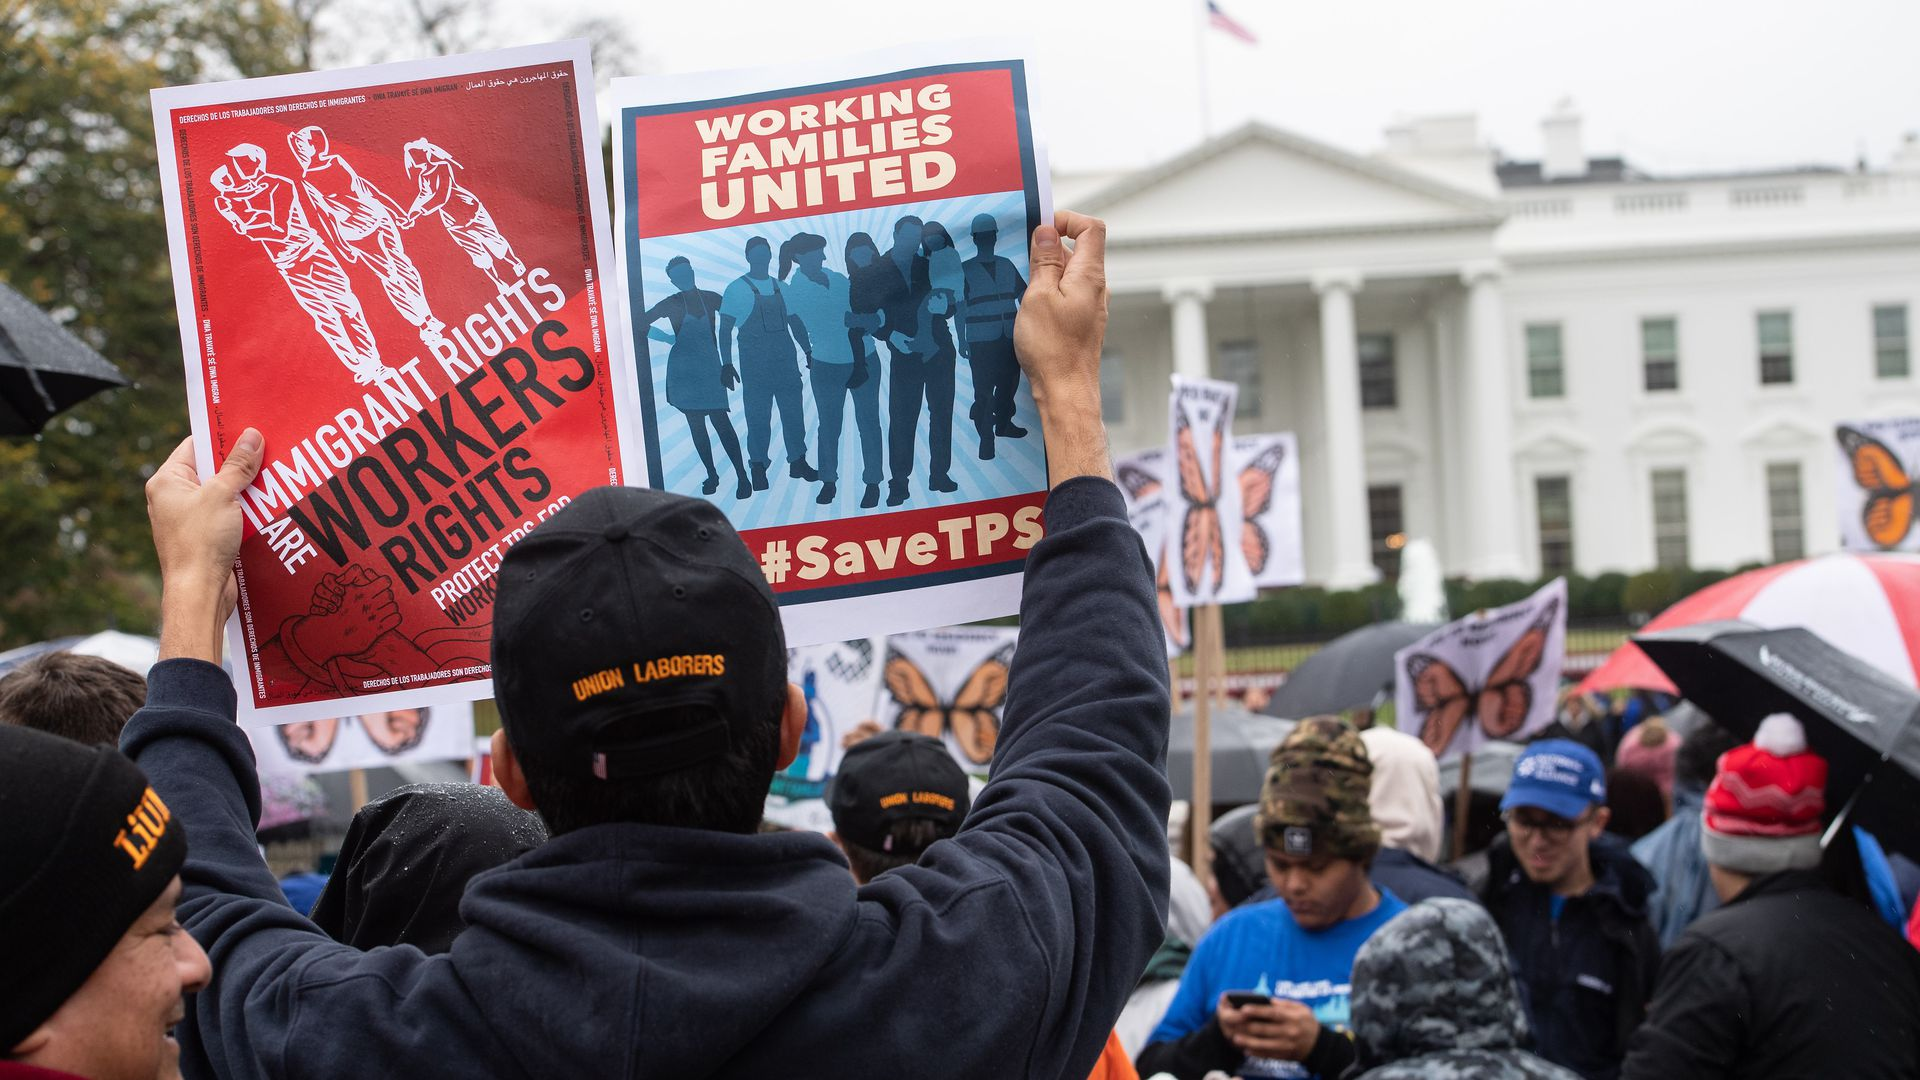 Demonstrators outside the White House protesting against the decision by the administration to terminate TPS for people from Sudan, El Salvador, Haiti and Nicaragua.